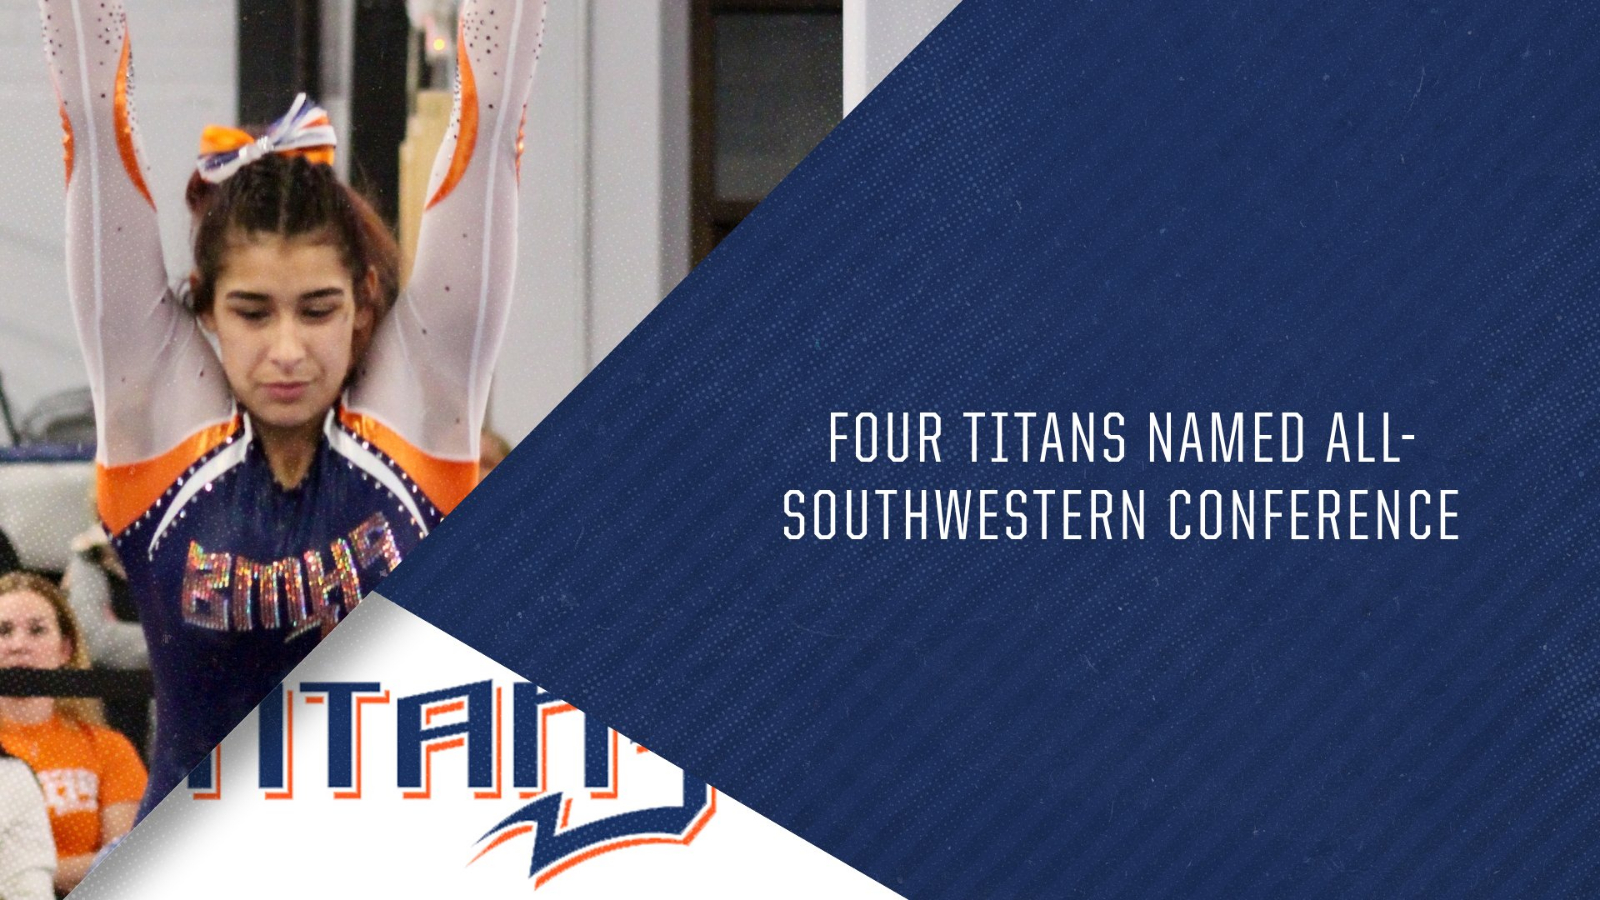 Four Titans Named All-Southwestern Conference